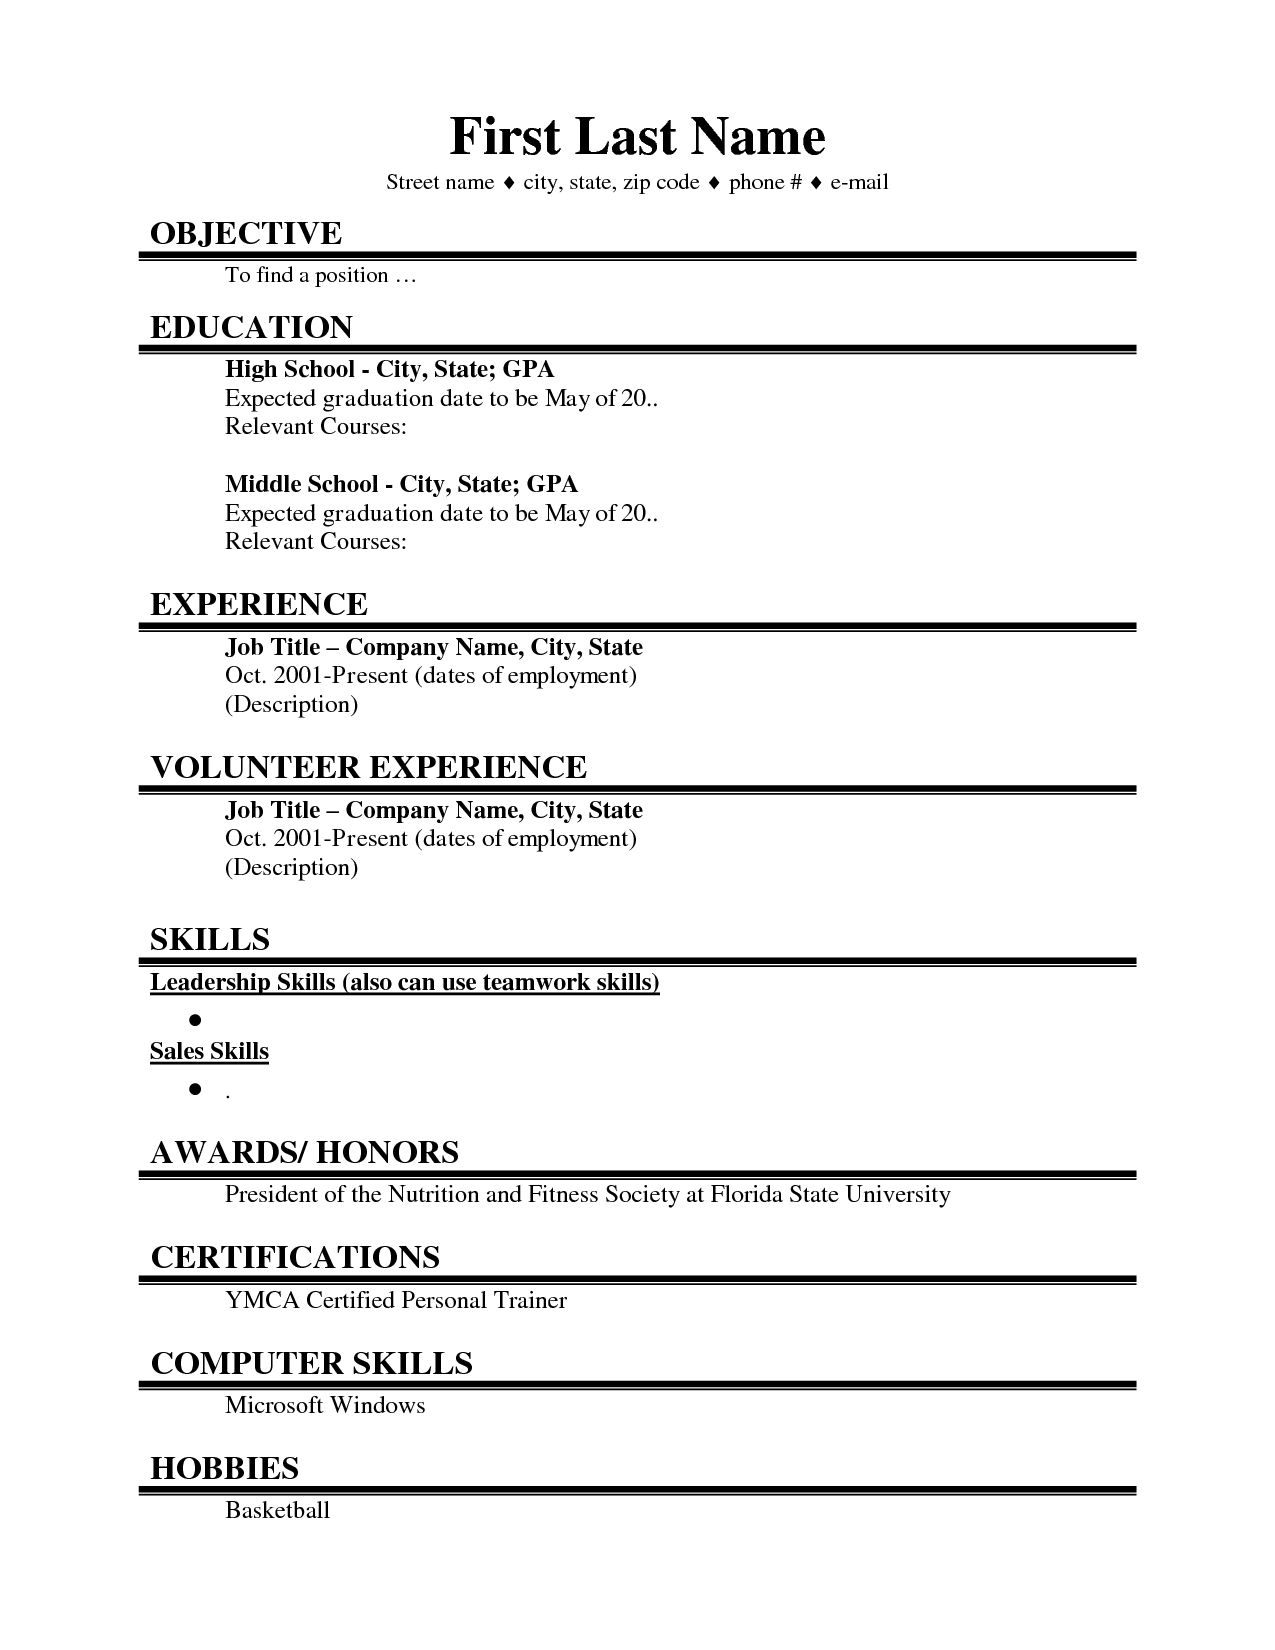 Job resume examples for college students job resume examples for job resume examples for college students job resume examples for students 268506f44 altavistaventures Choice Image